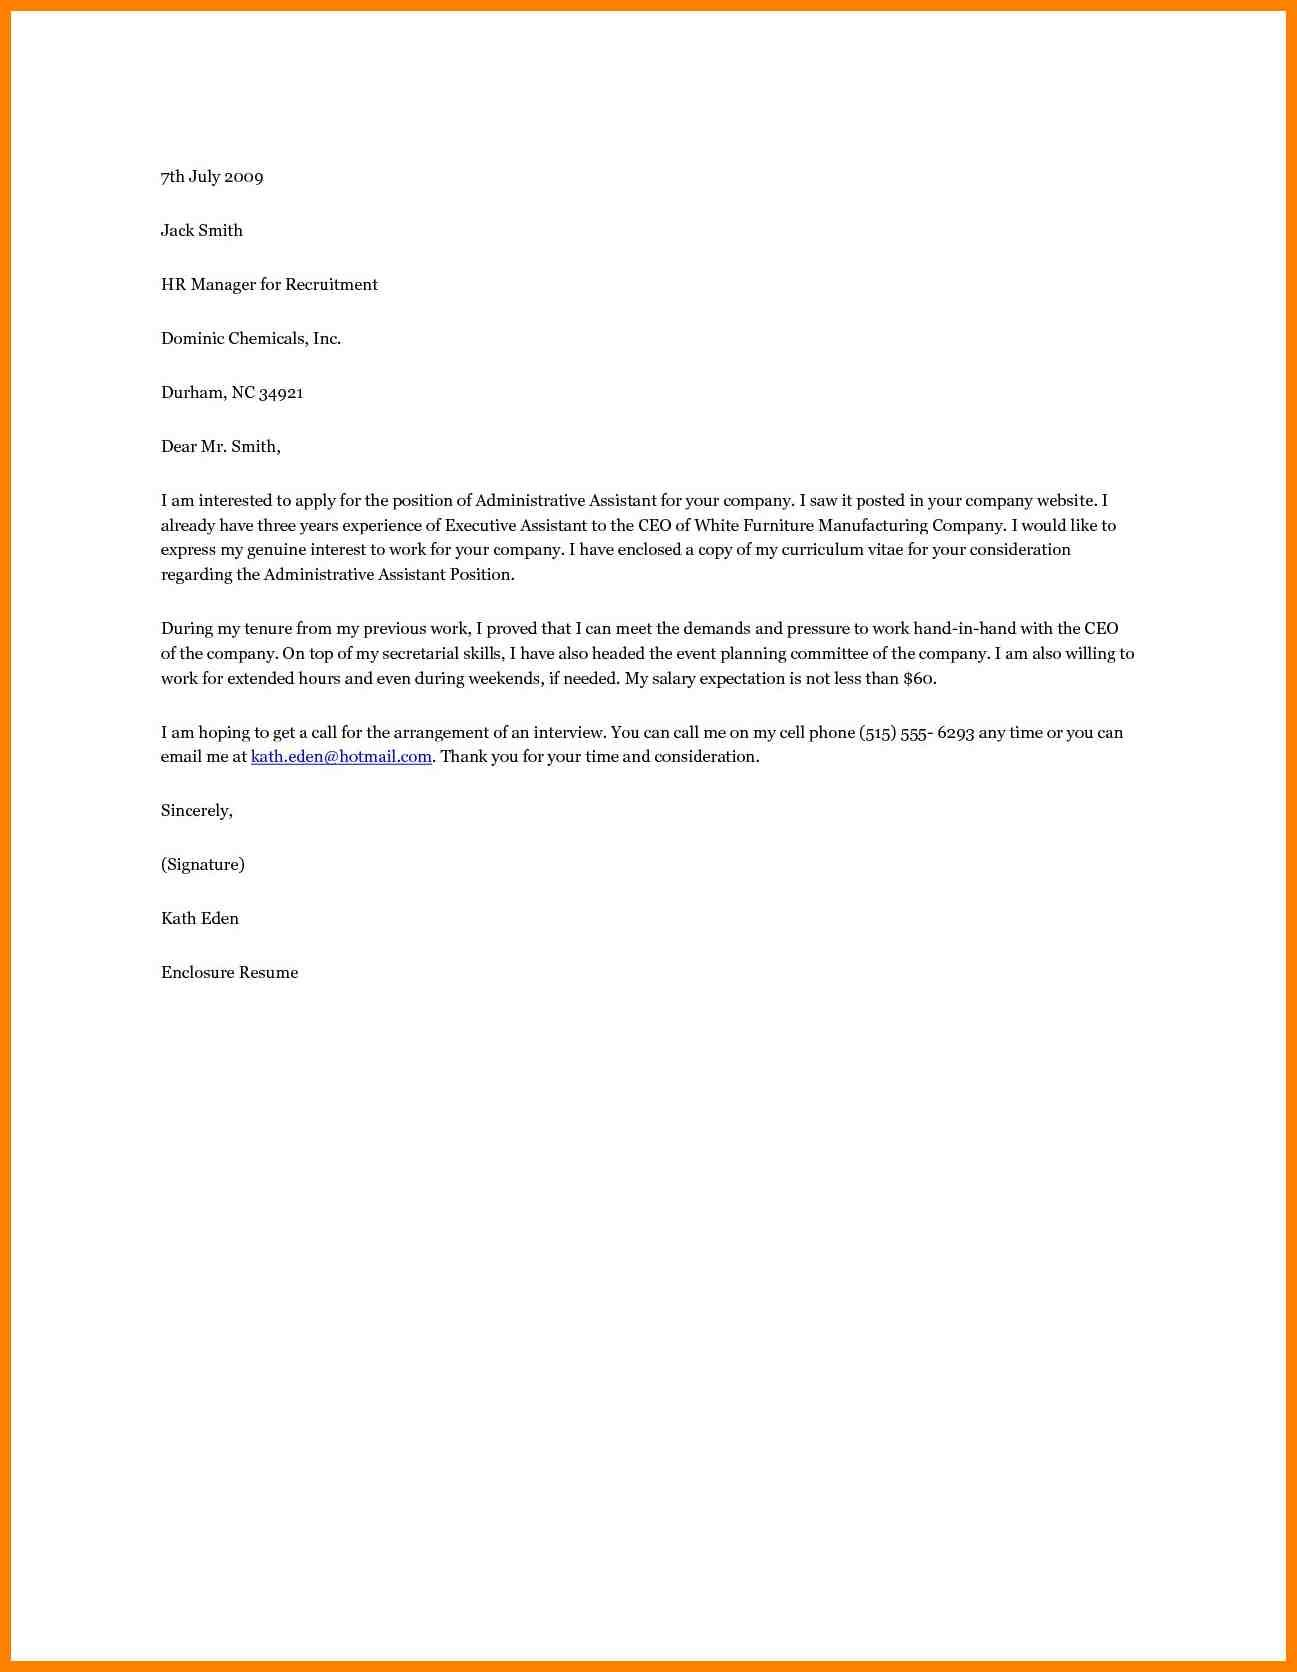 Cover Letter Examples For Executive Assistant To Ceo